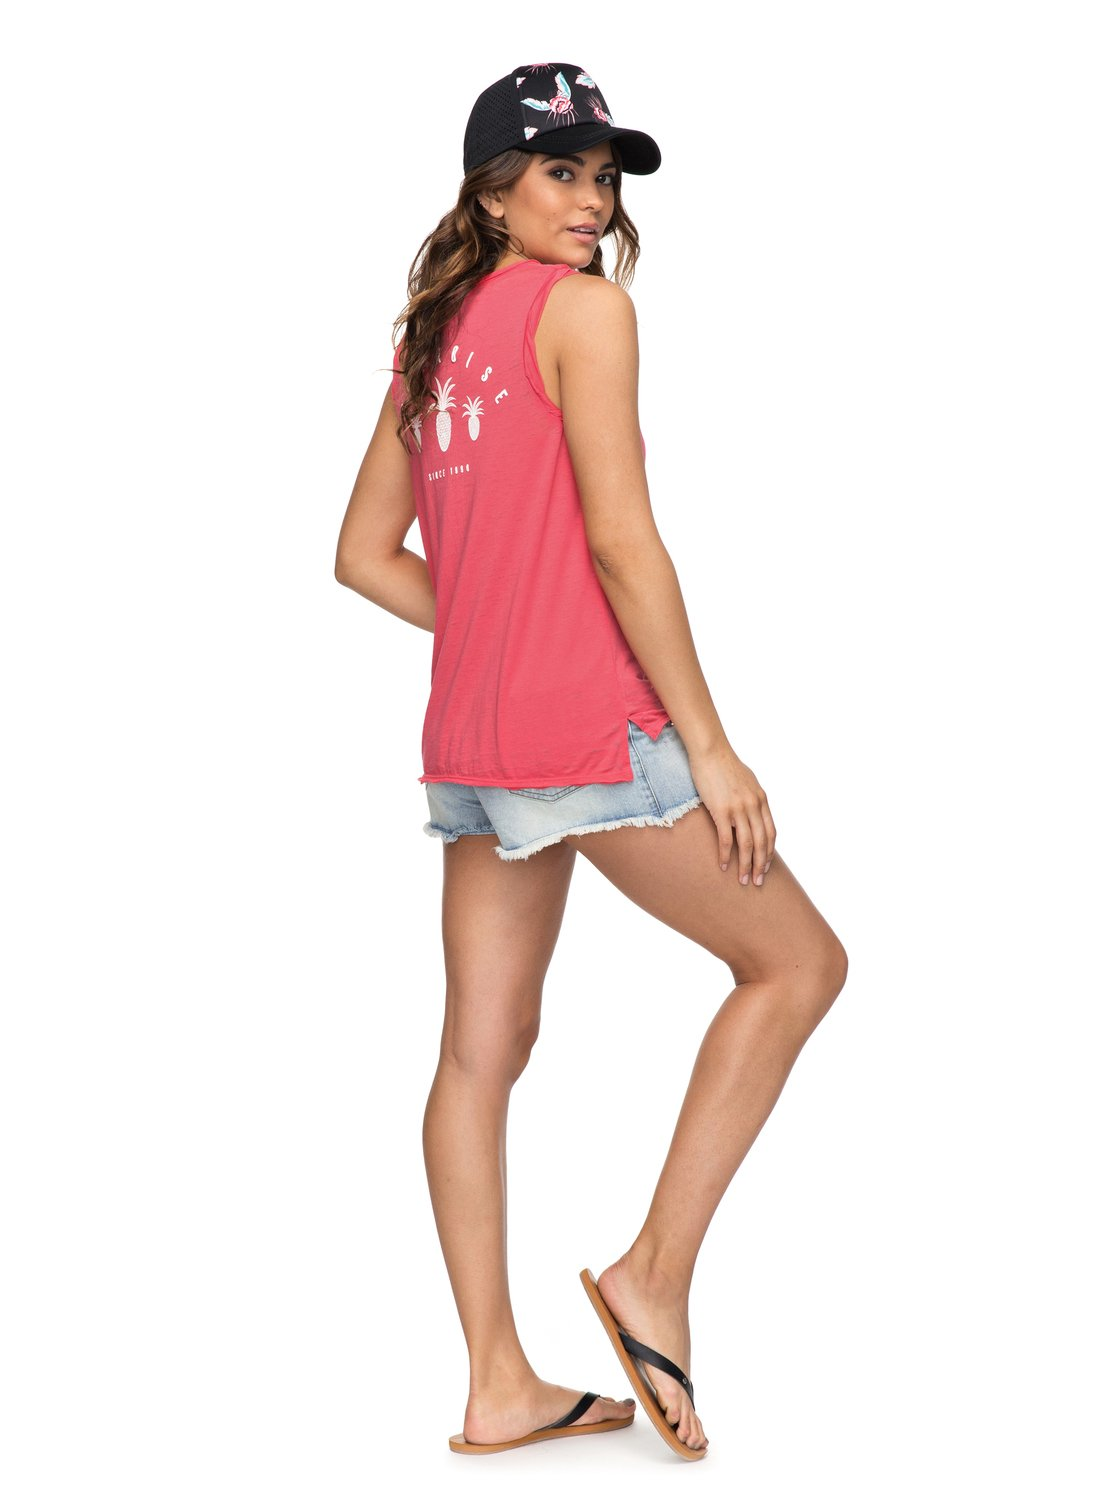 55c3c13c874 2 Time For Another Day A - Sleeveless T-Shirt for Women ERJZT04156 Roxy